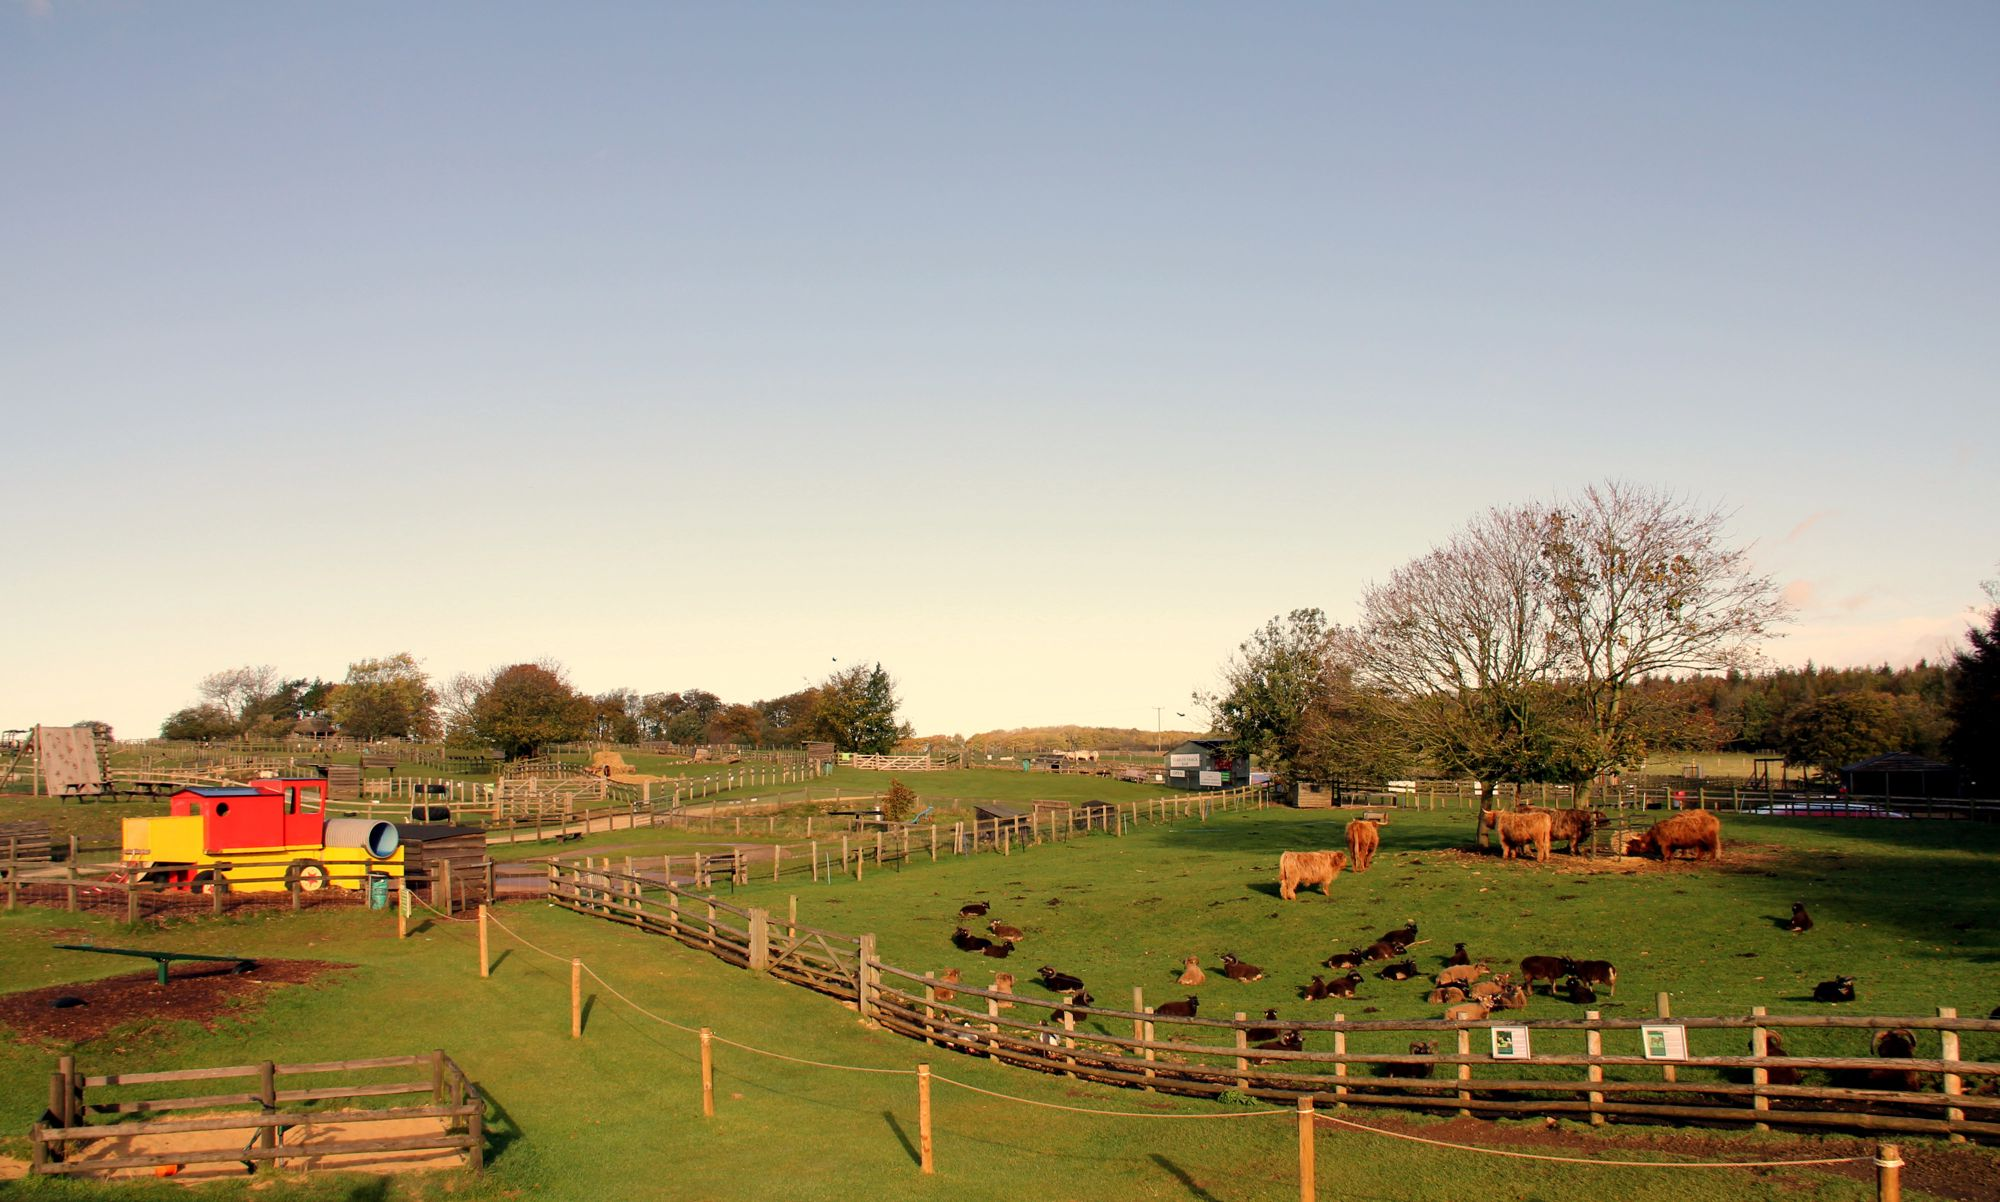 Cotswold Farm Park & Glamping in the Cotswolds u2013 The best glampsites in the Cotswolds